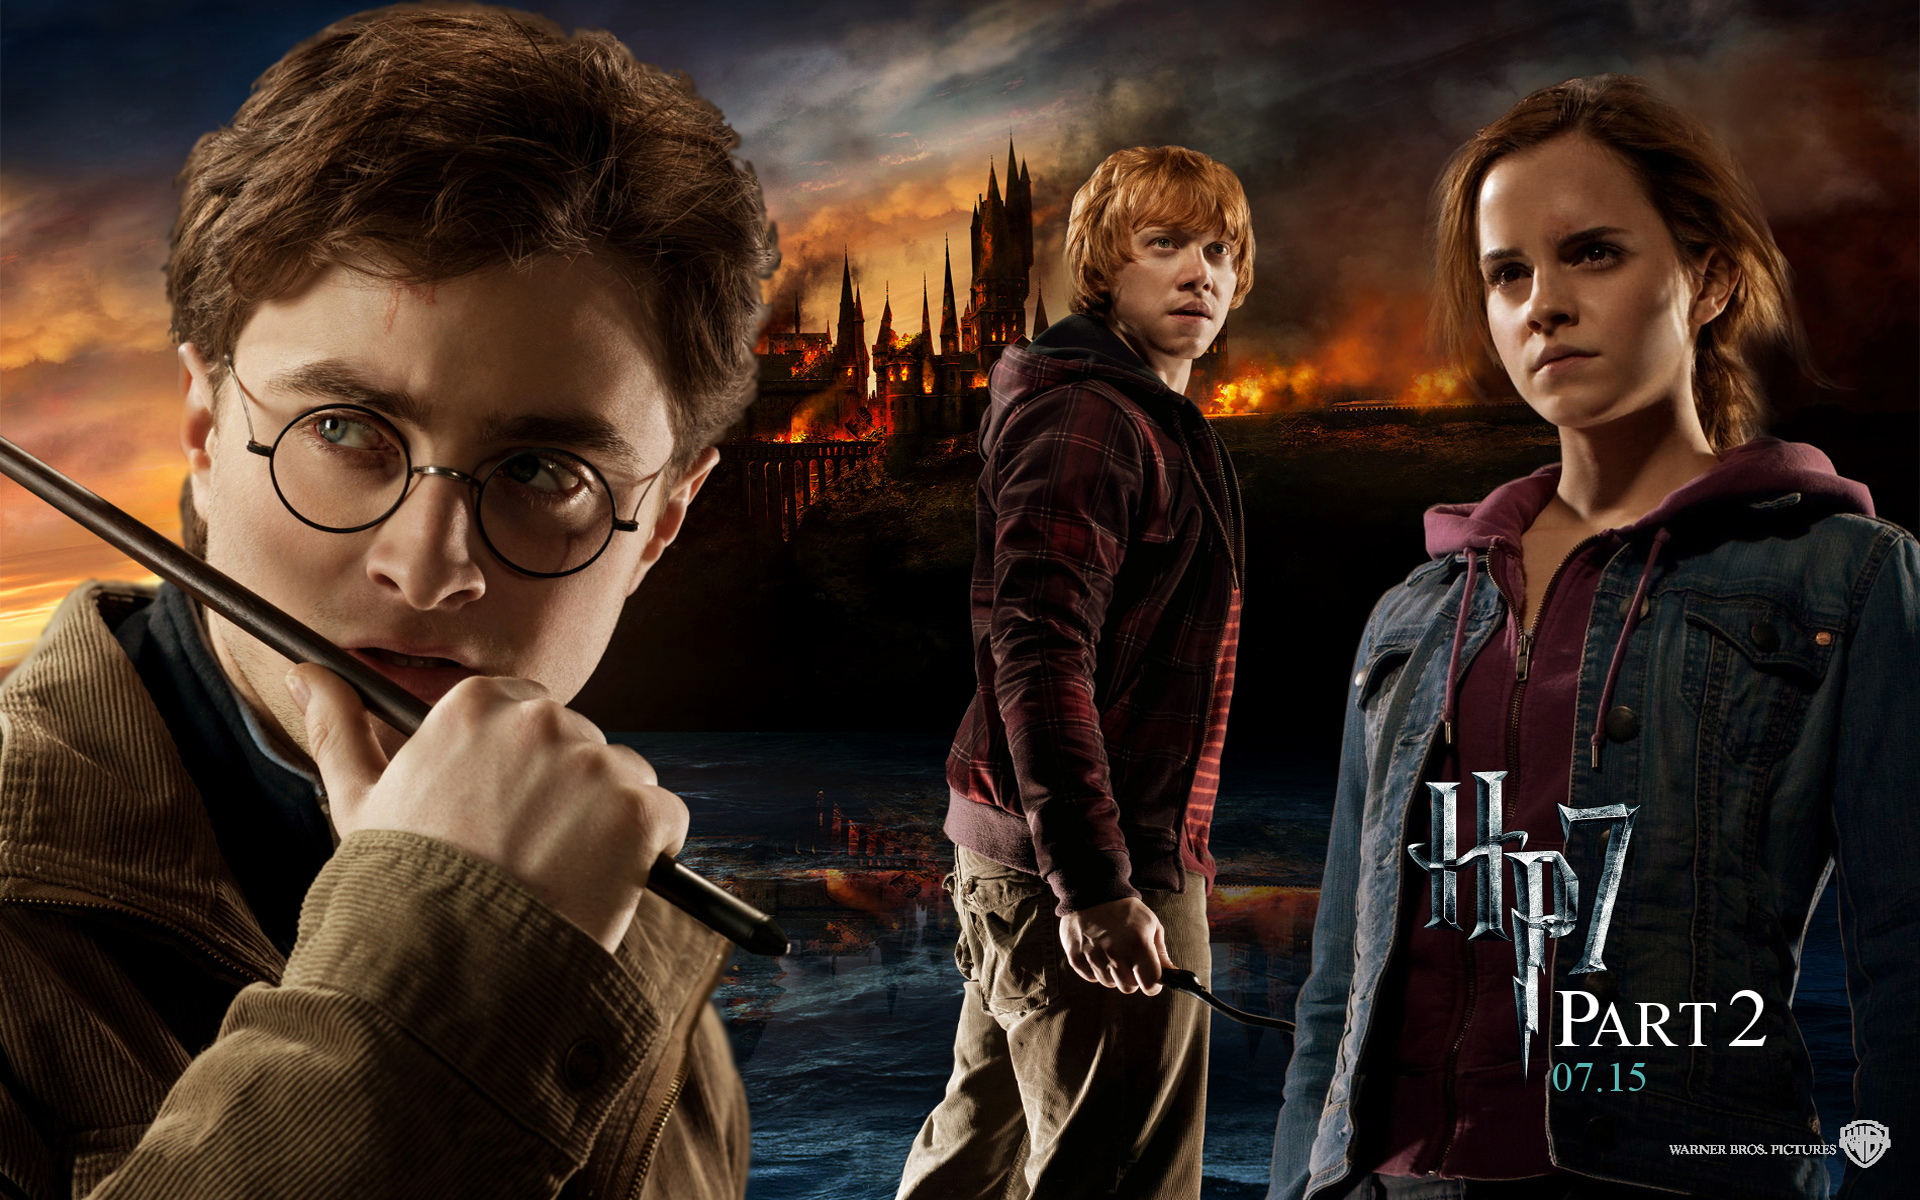 Harry Potter Deathly Hallows Part II 424.93 Kb